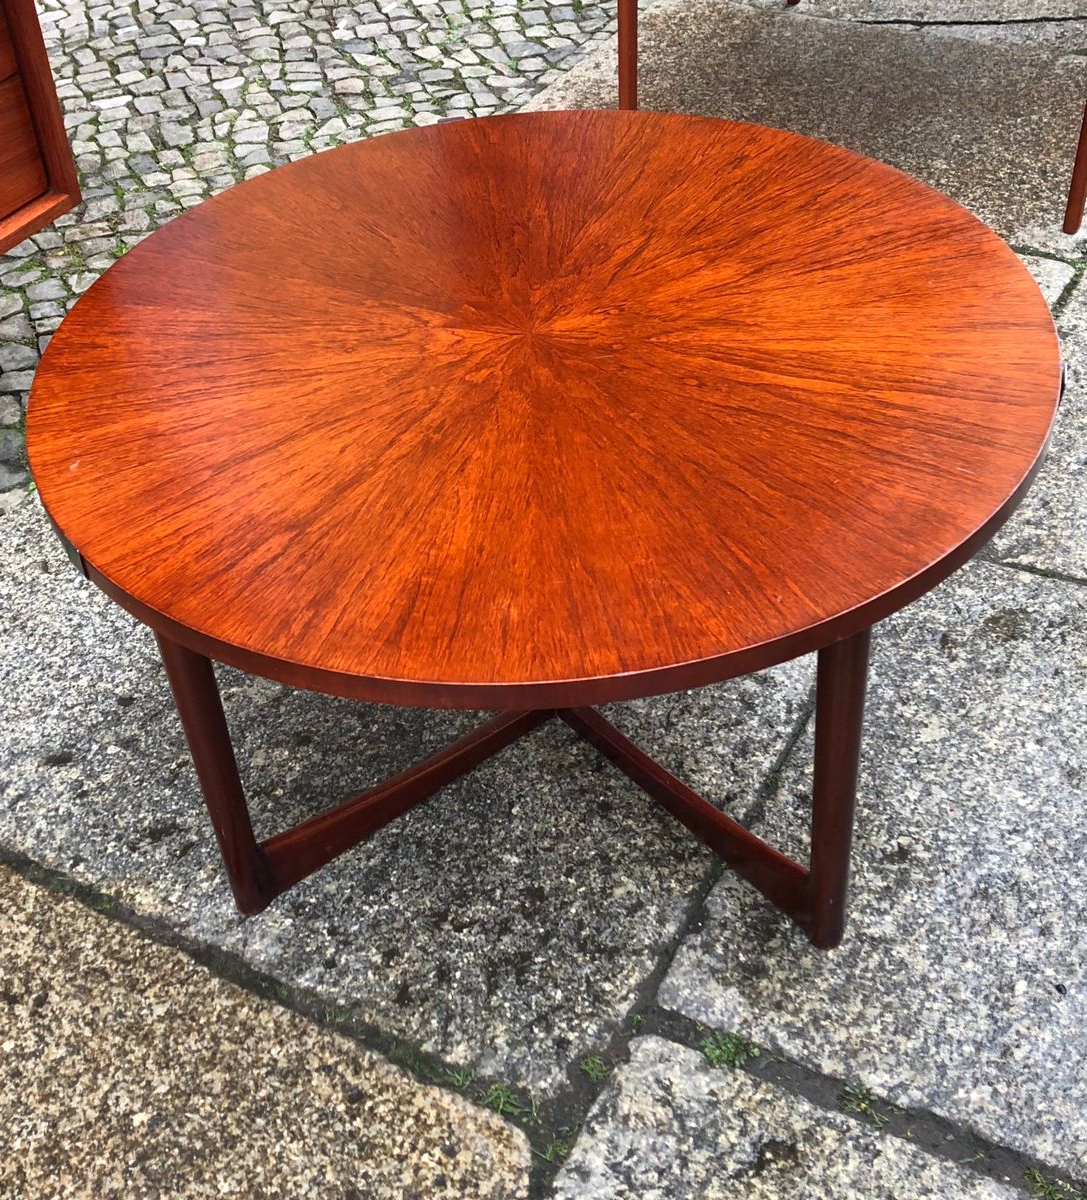 Round Teak Coffee Tables Inside Well Liked Round Teak Starburst Table From Mcintosh, 1960S For Sale At Pamono (Gallery 10 of 20)